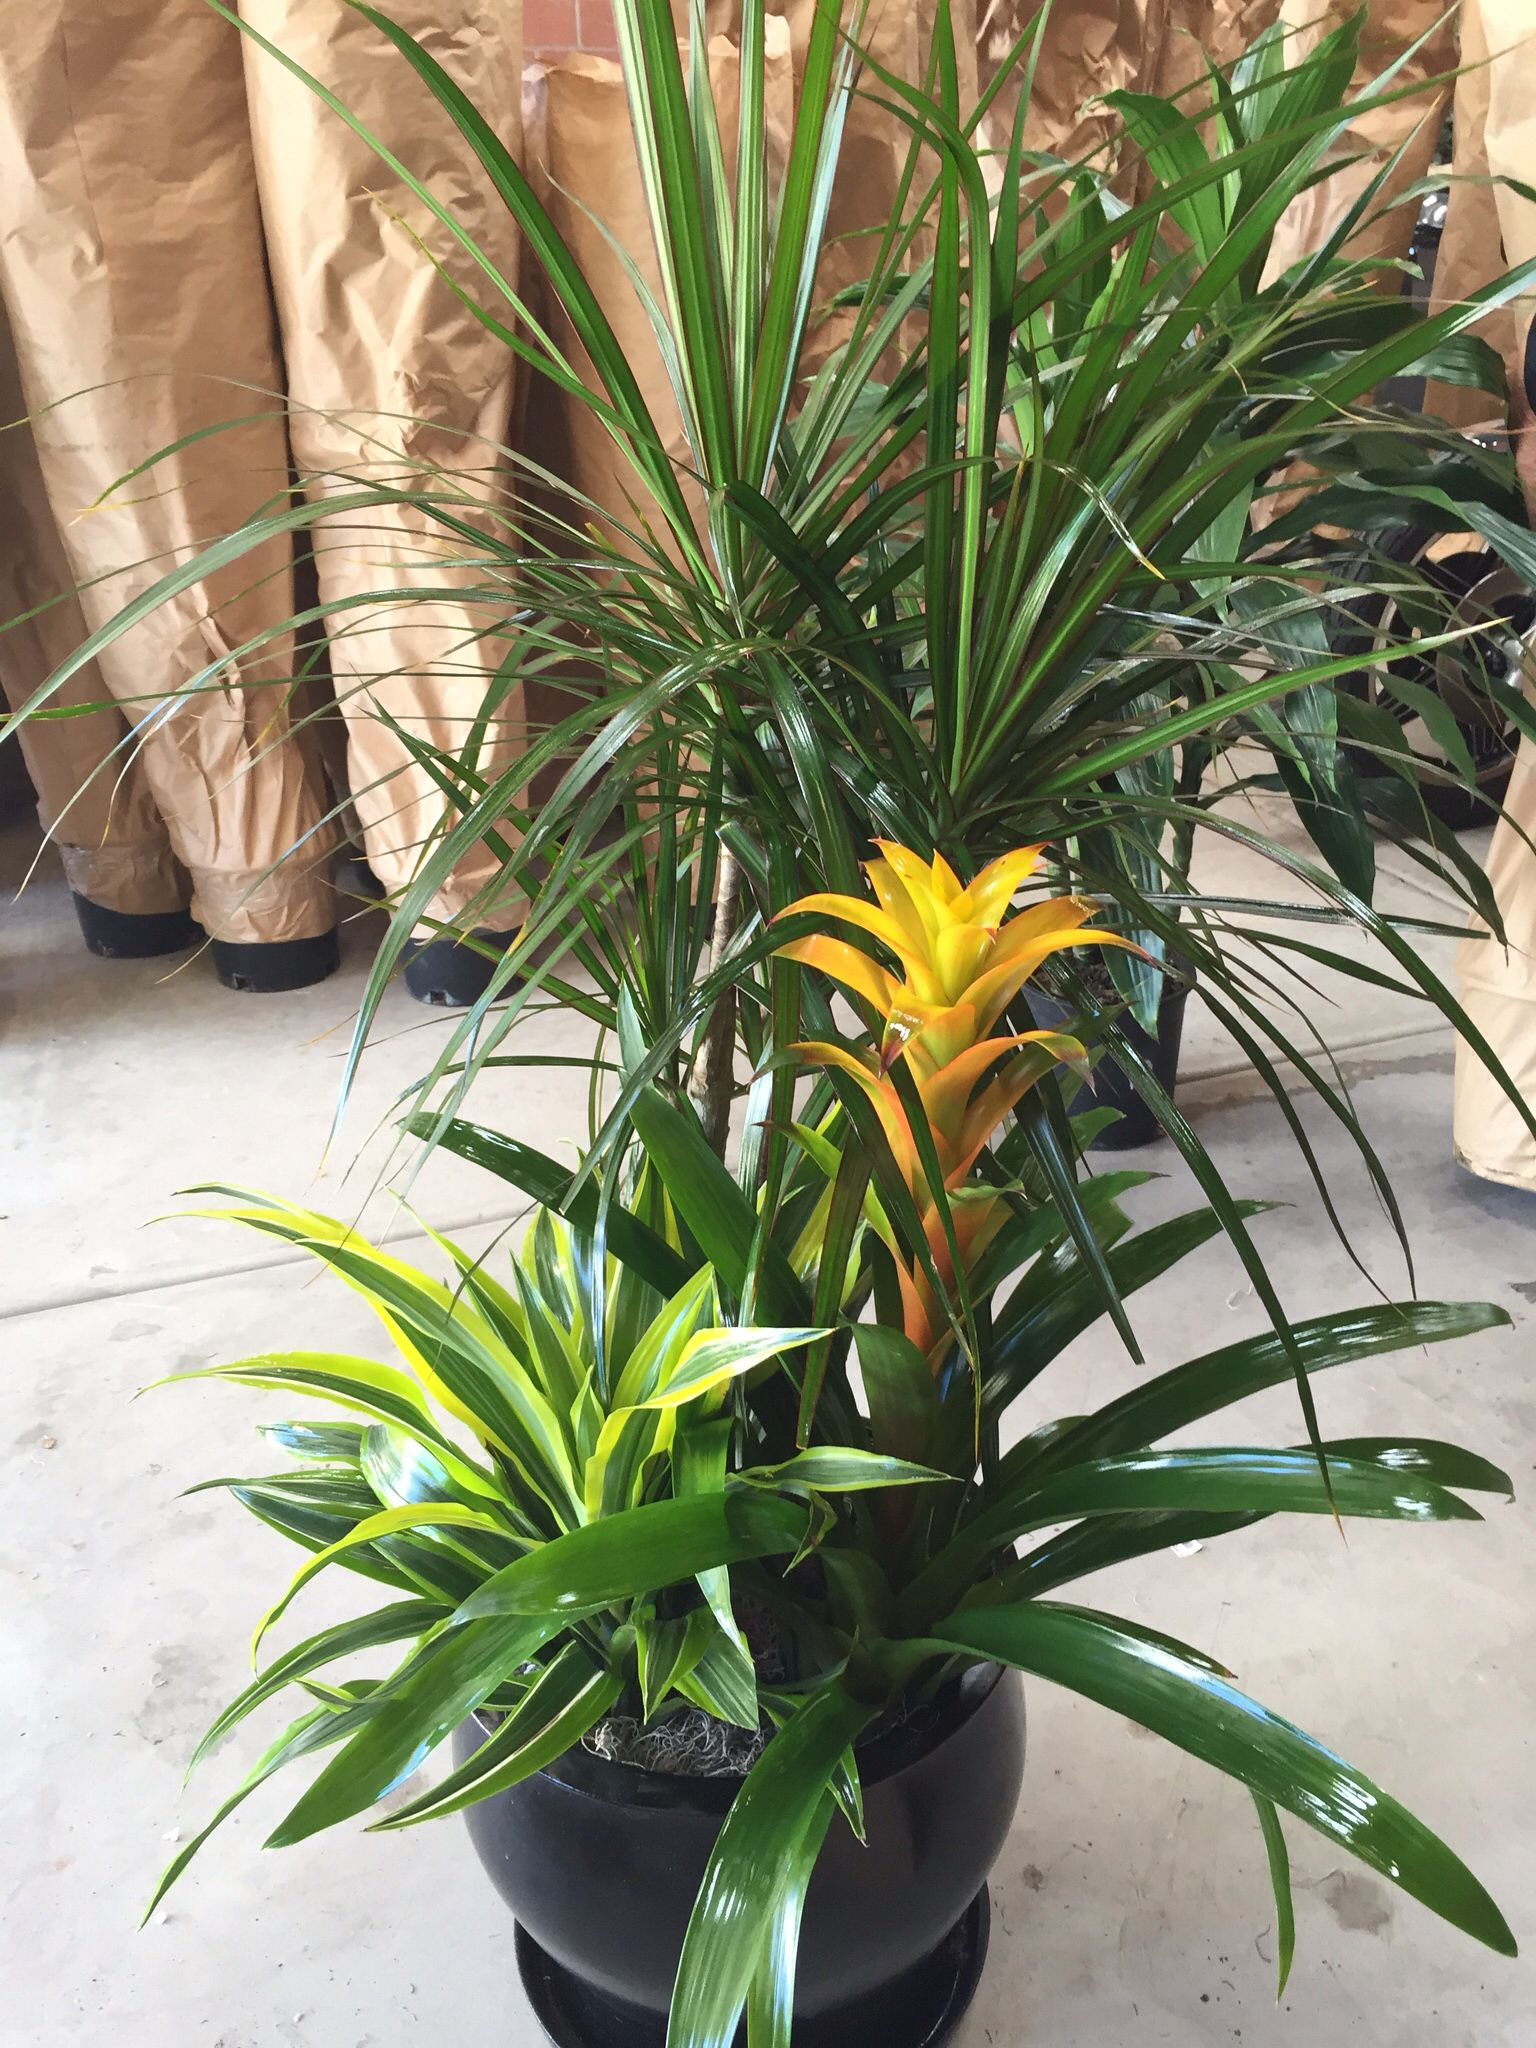 Dracaena Marginata, Flowering Bromeliad, & Warneckii Lemon Lime Ready To